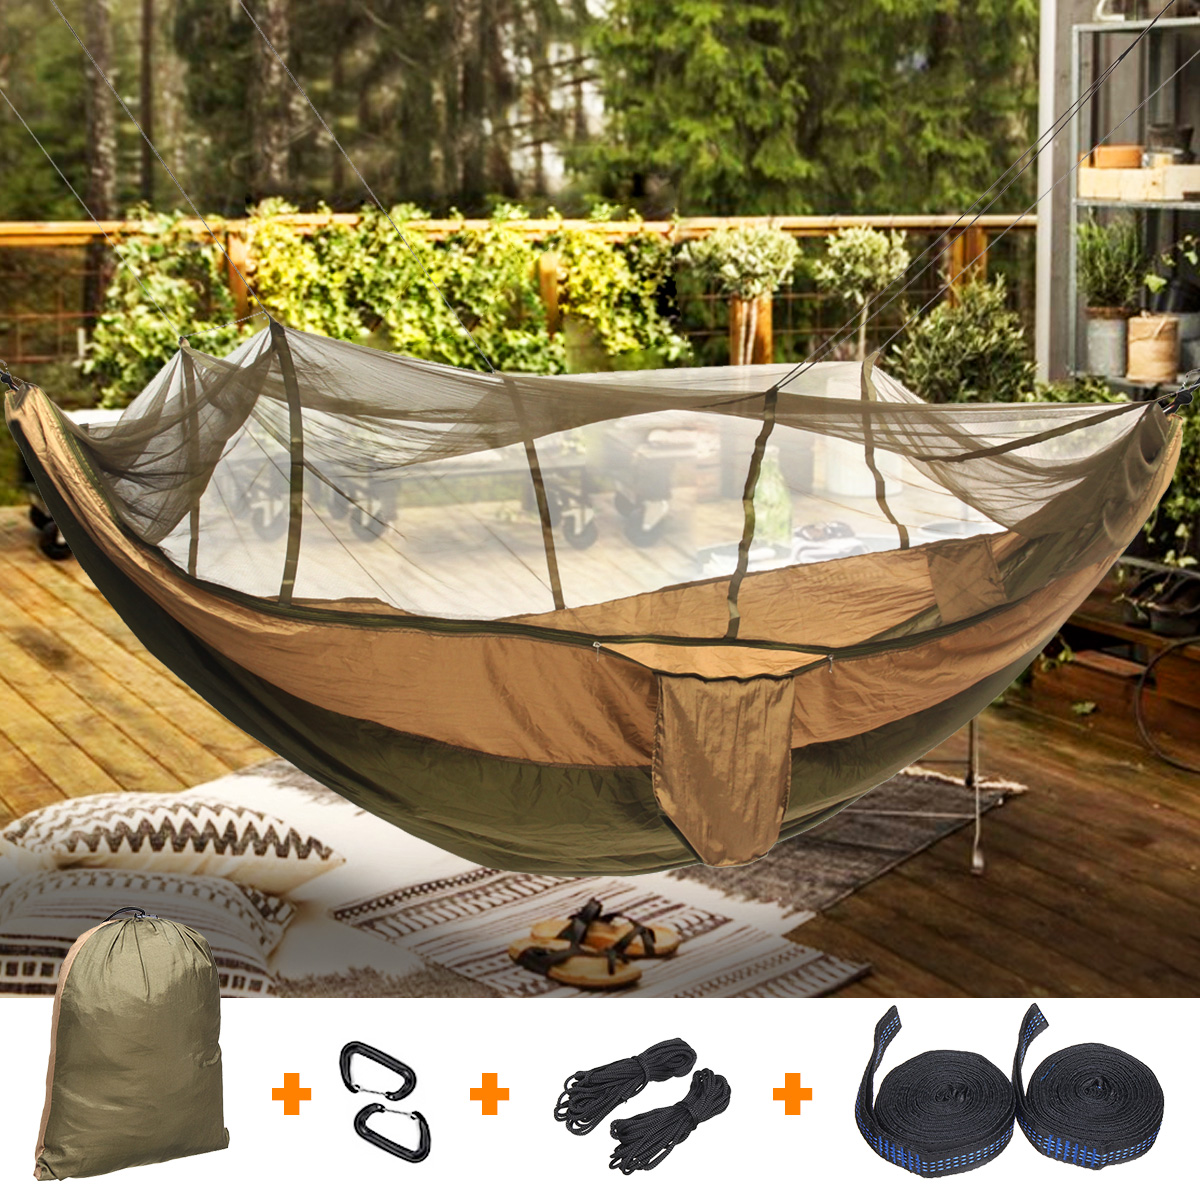 260x140cm Anti-mosquito Portable Outdoor Hammock Camping Hanging Sleeping Bed With Mosquito Net Garden Swing Relaxing Hammock